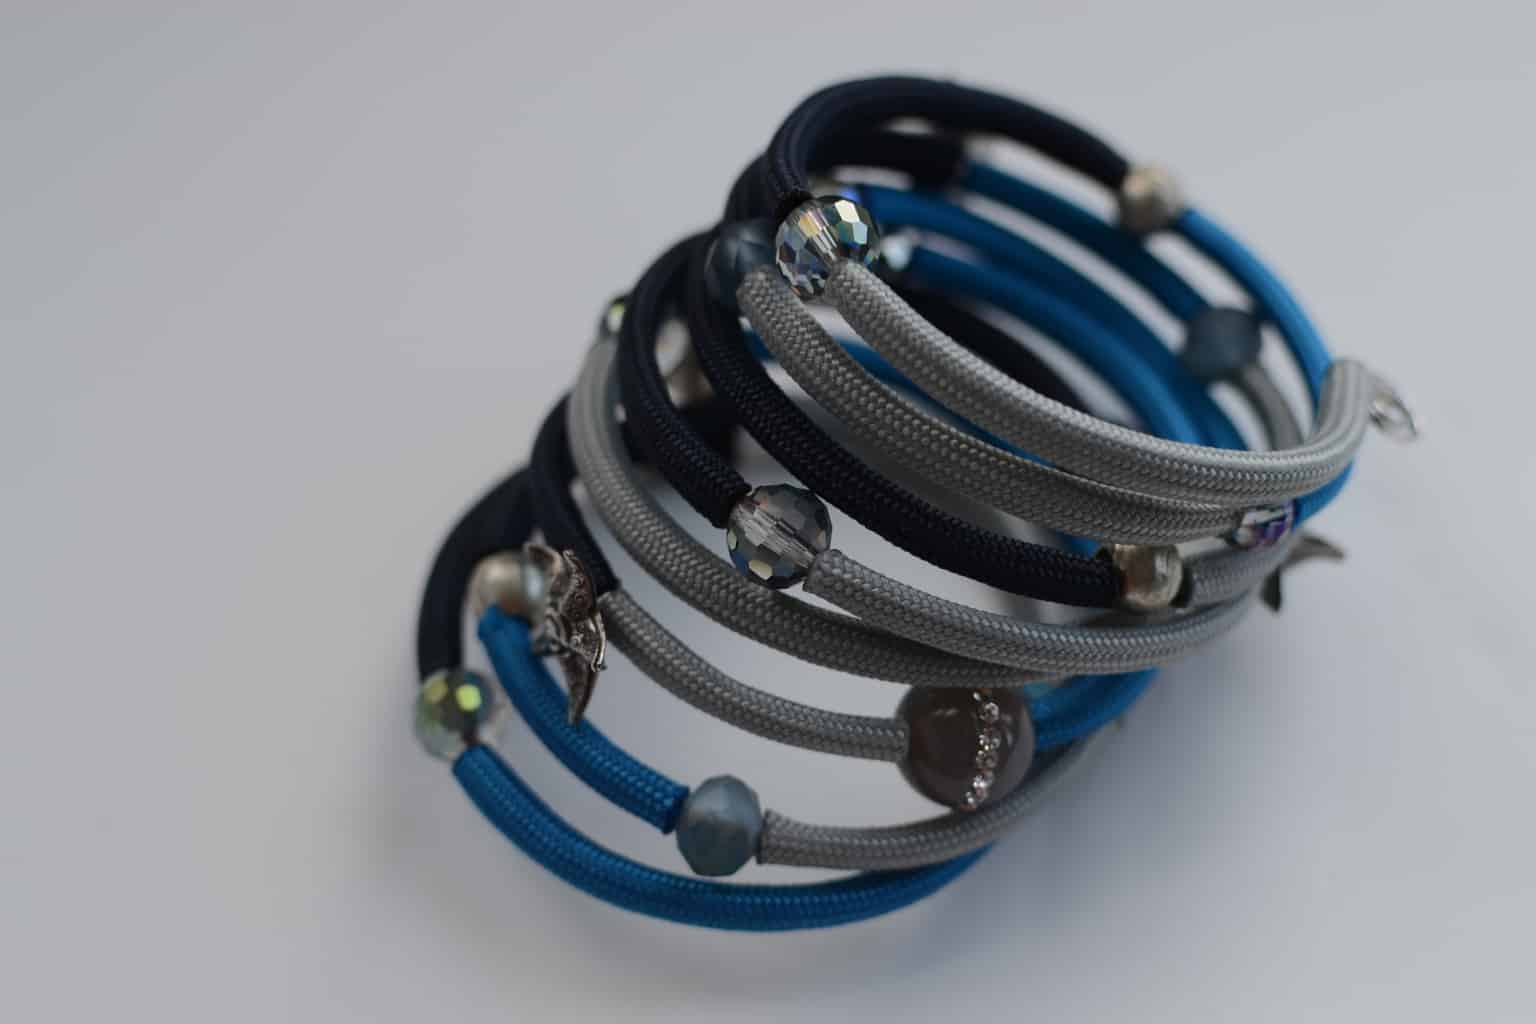 Making Jewelry With Memory Wire is fun, fast and affordable